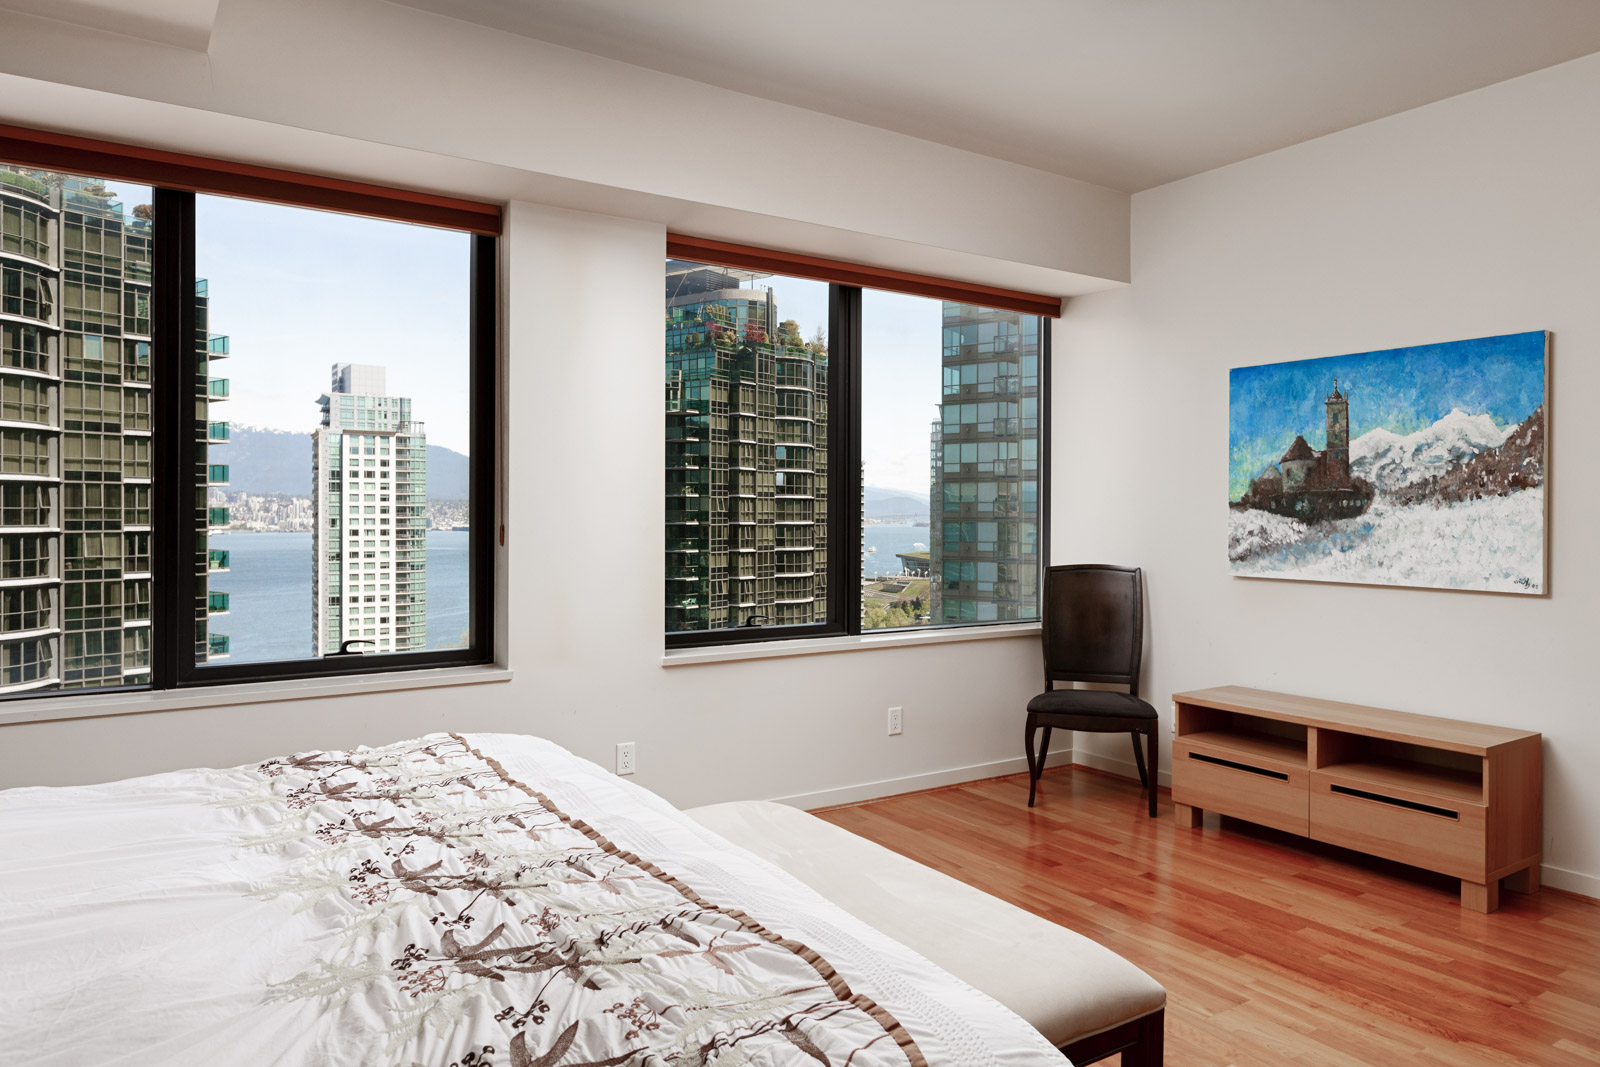 Bedroom with view in Coal Harbour